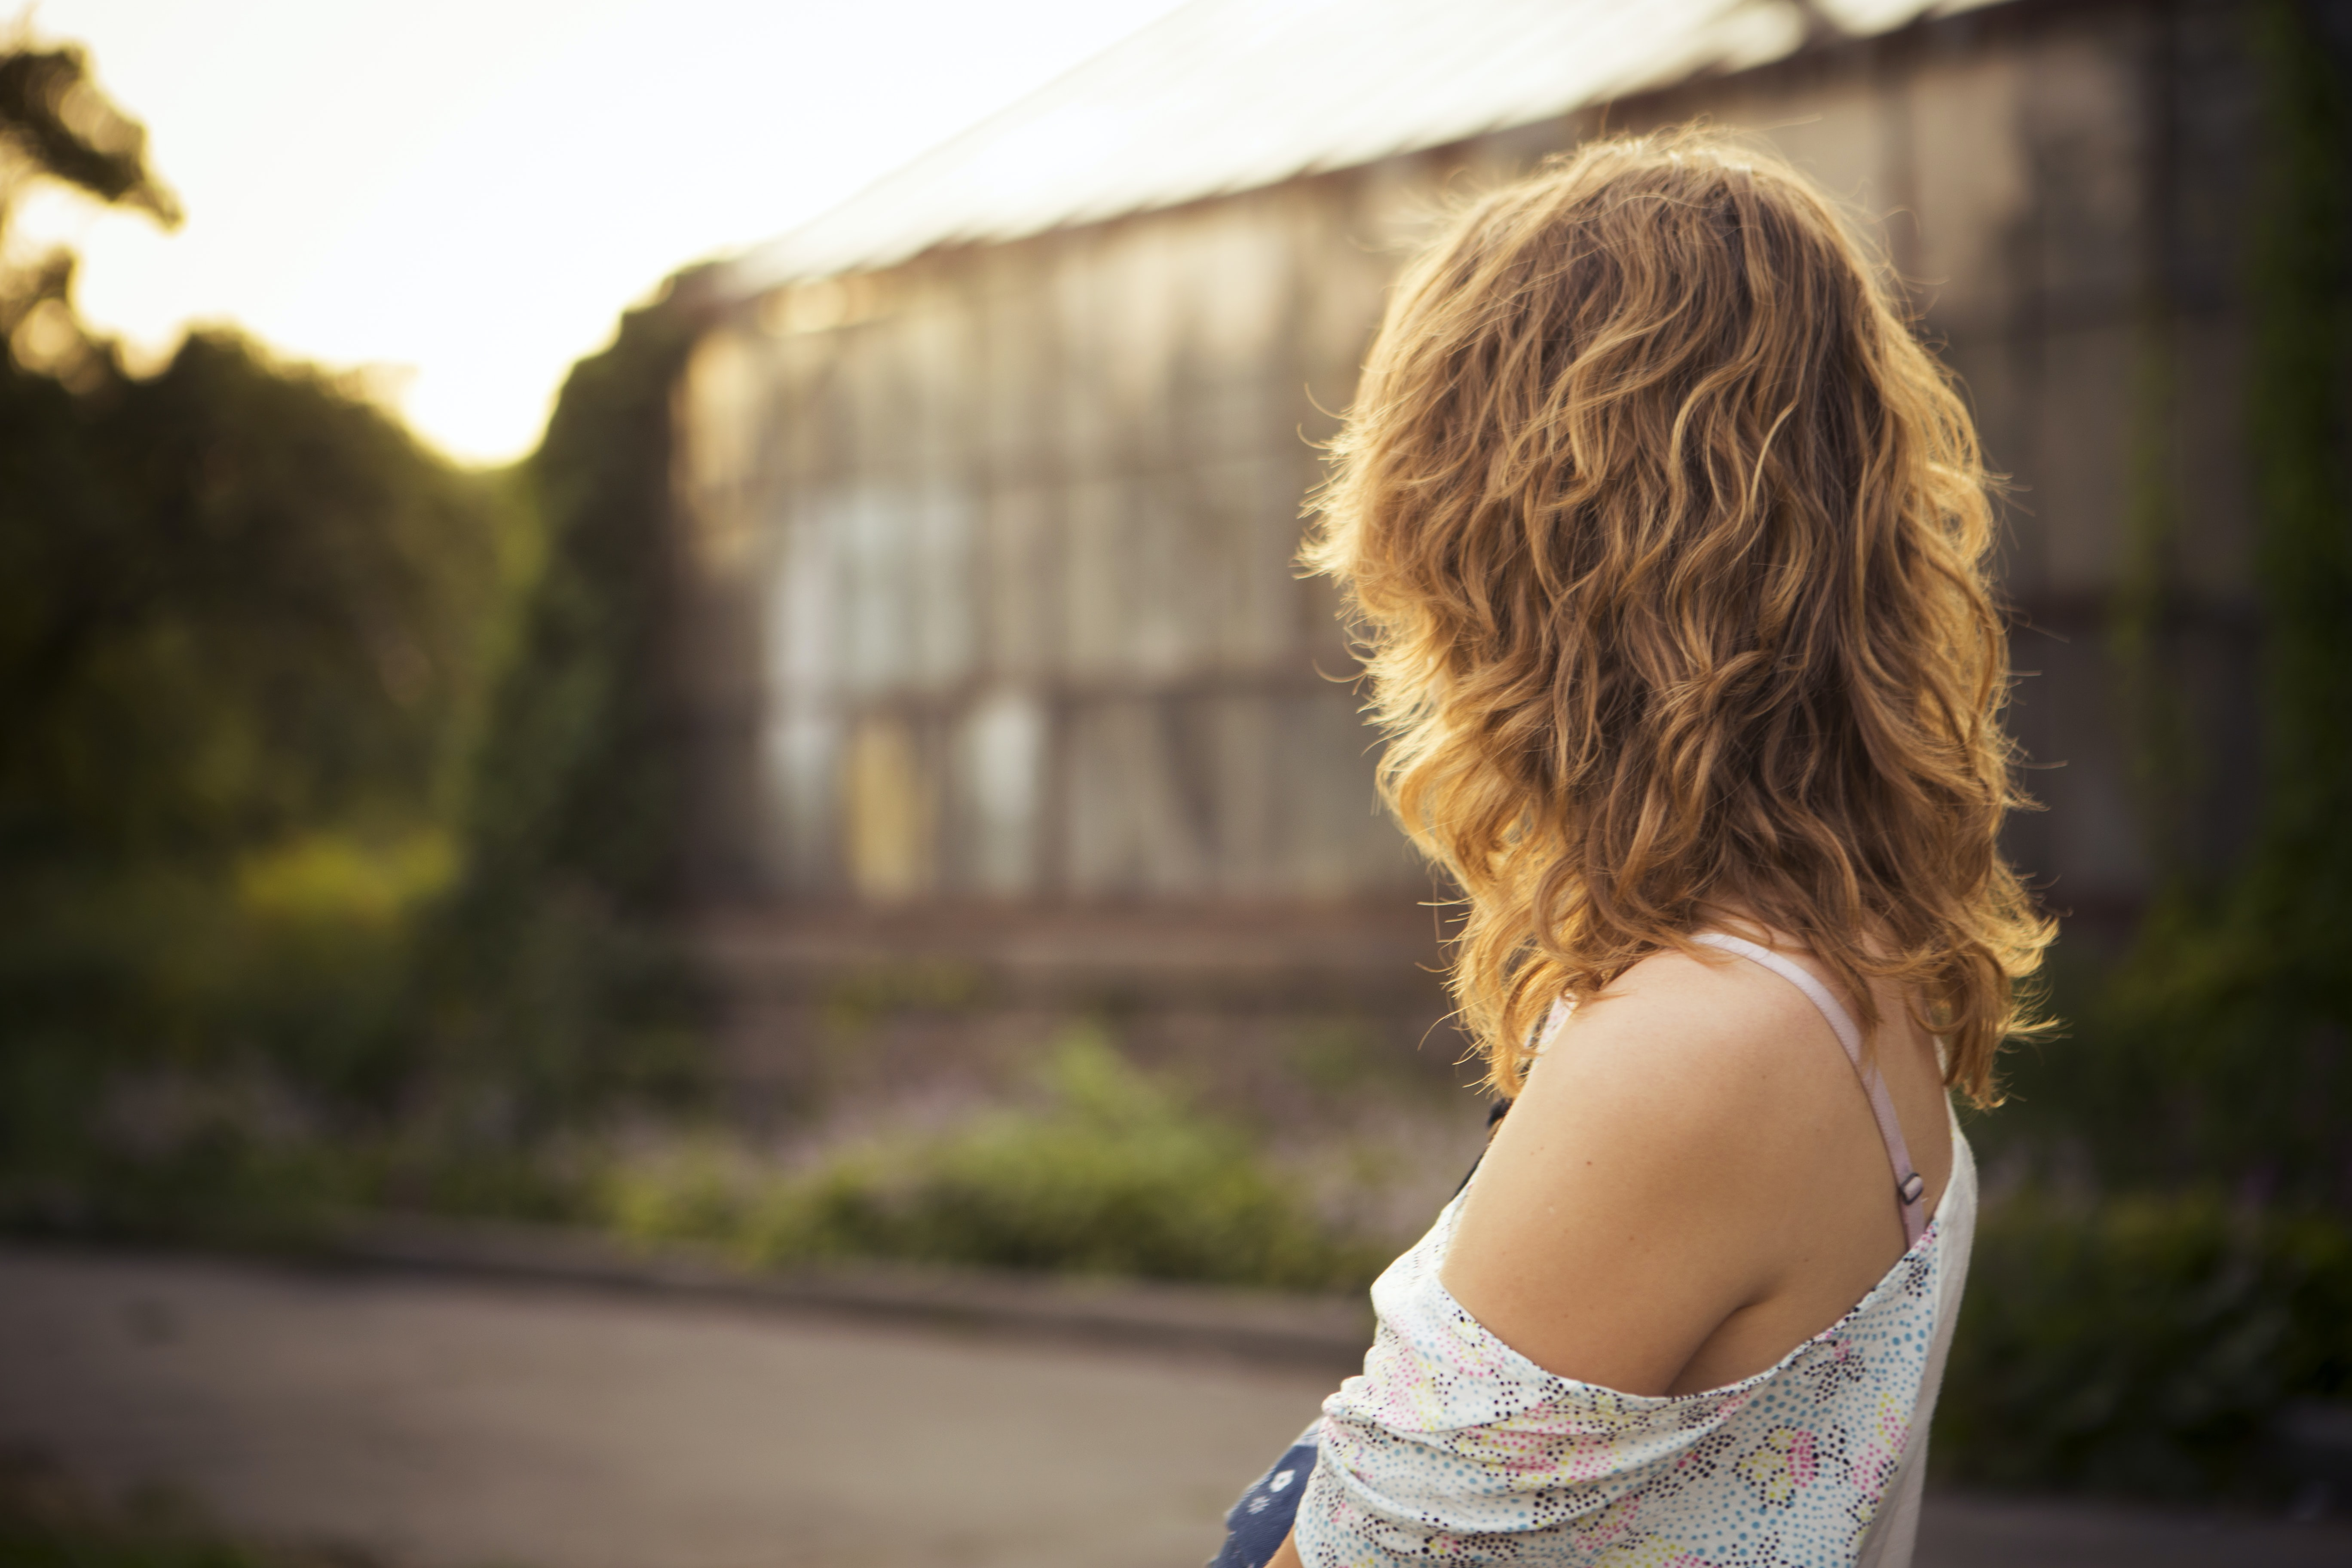 A woman with wavy hair and off-the-shoulder top looks away toward a greenhouse